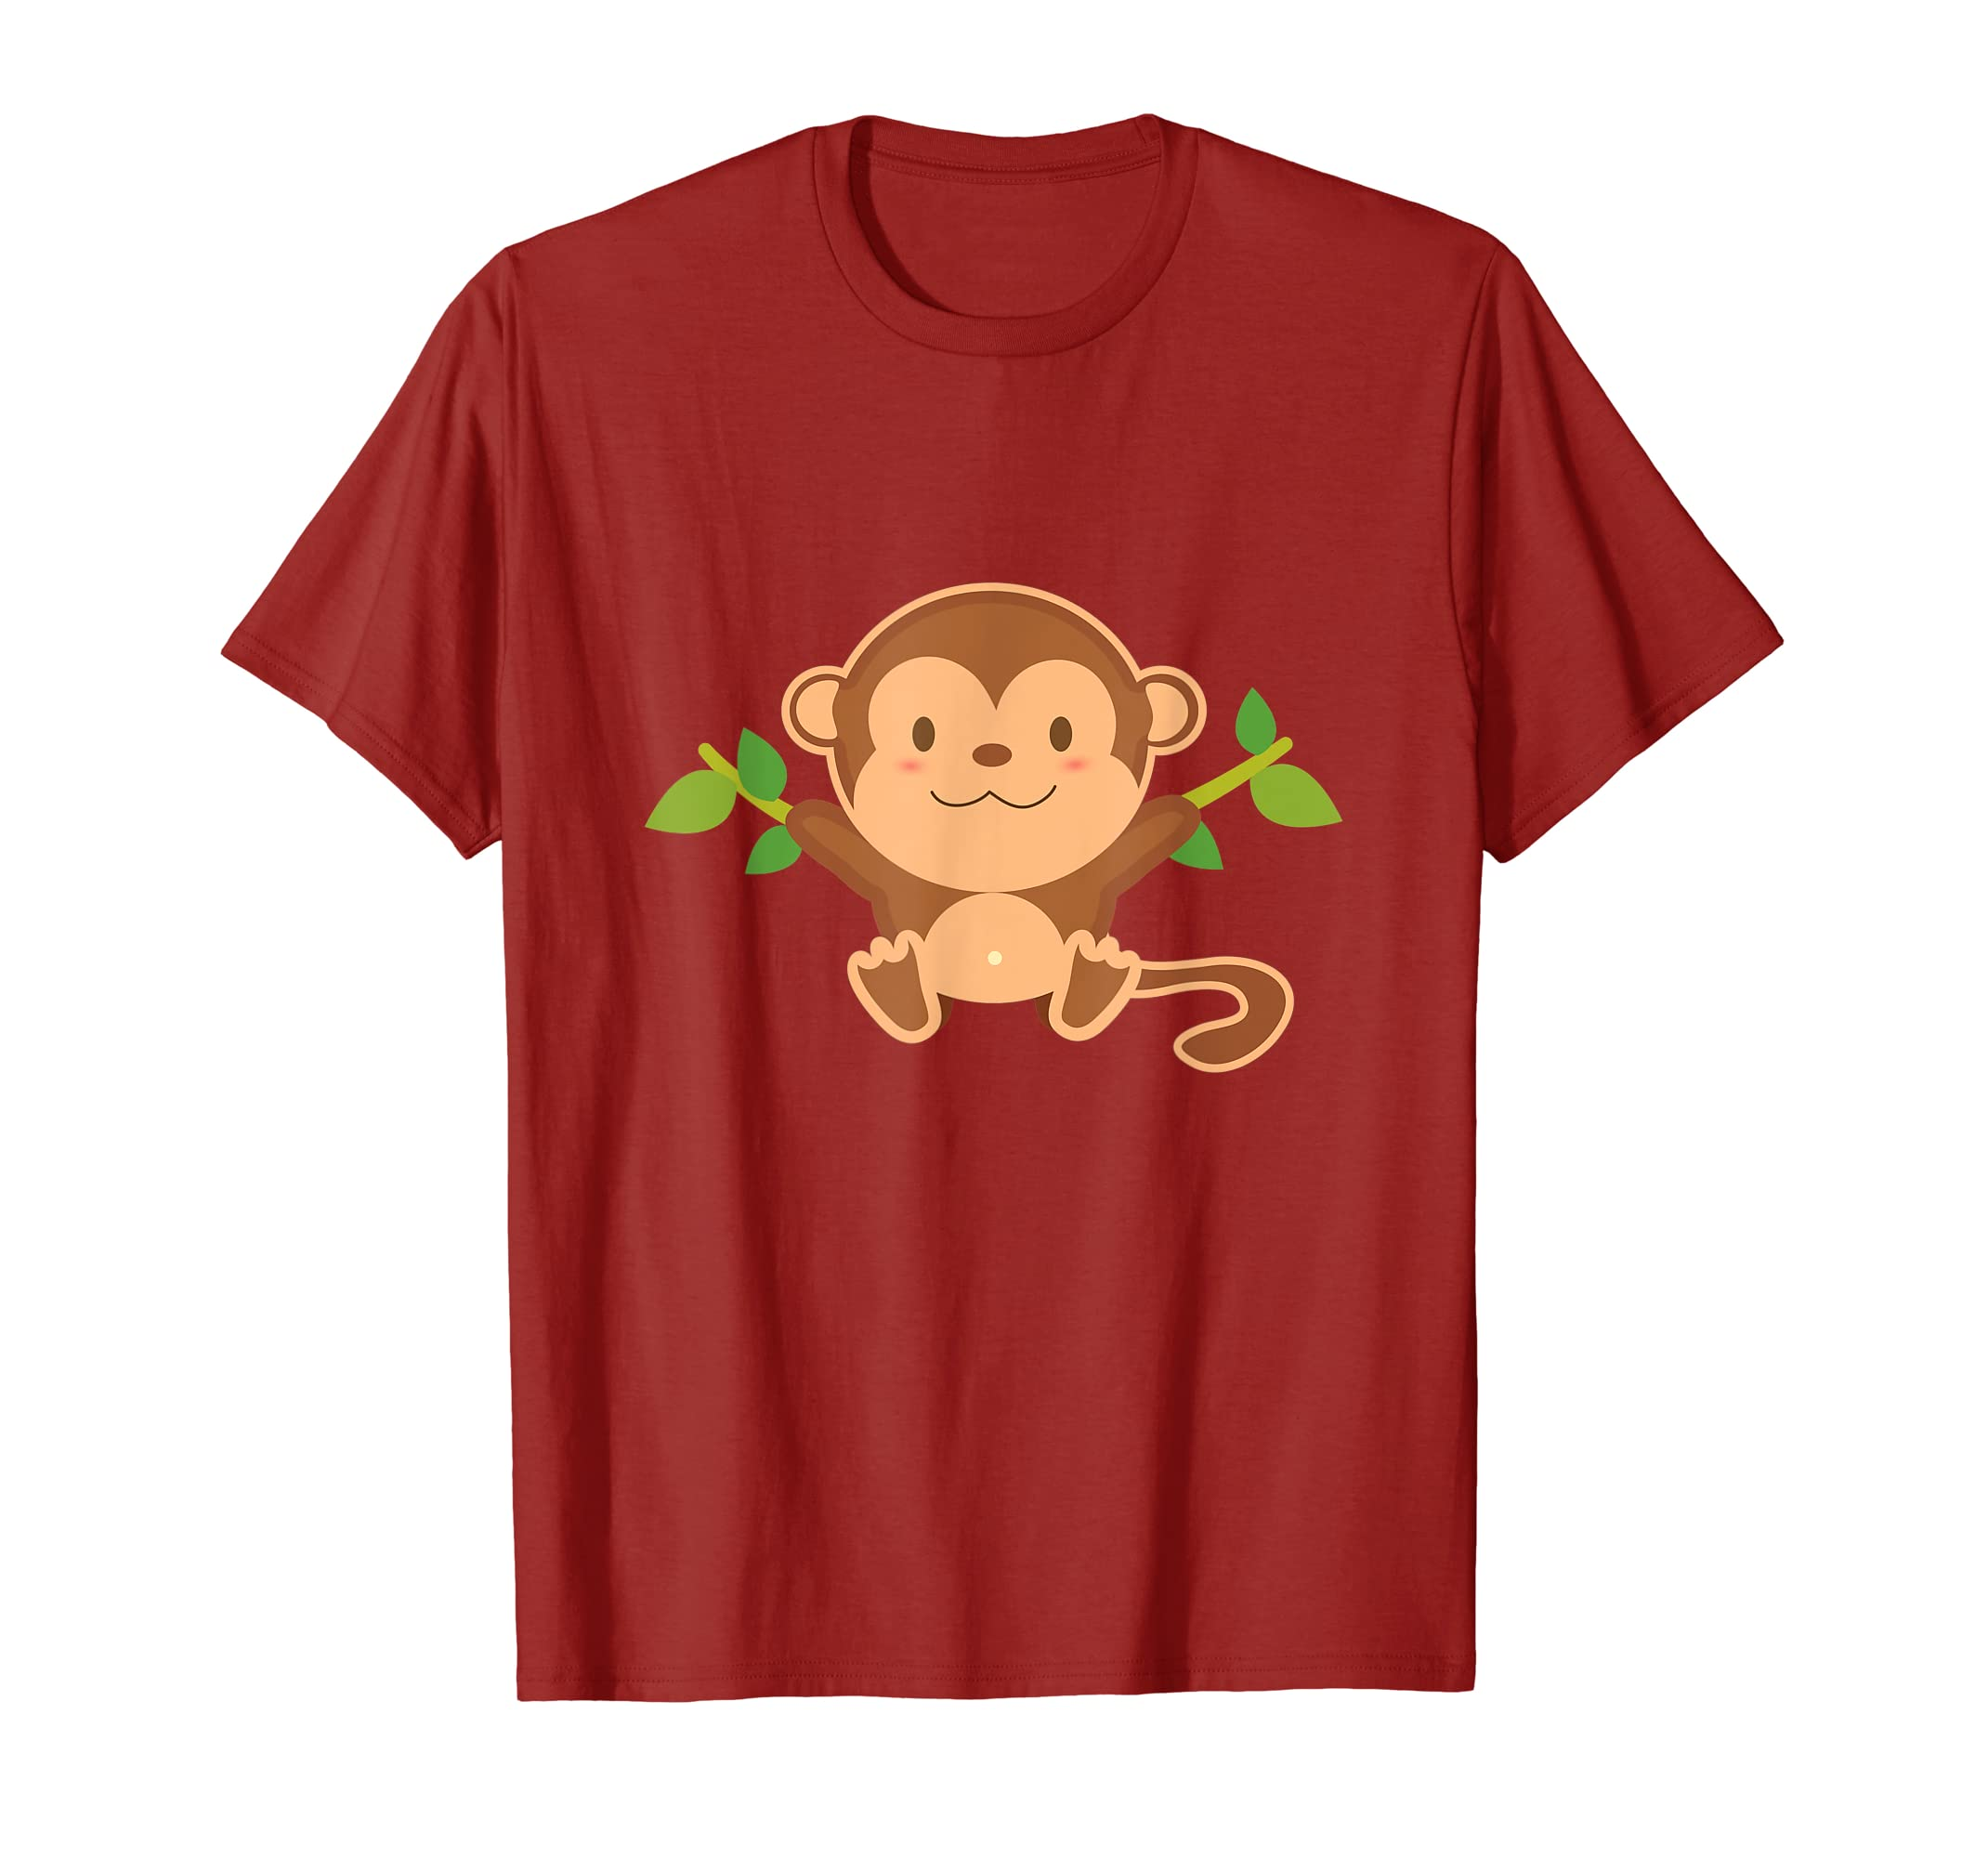 edda4c22 Amazon.com: Cute Funny Monkey T-Shirt: Clothing